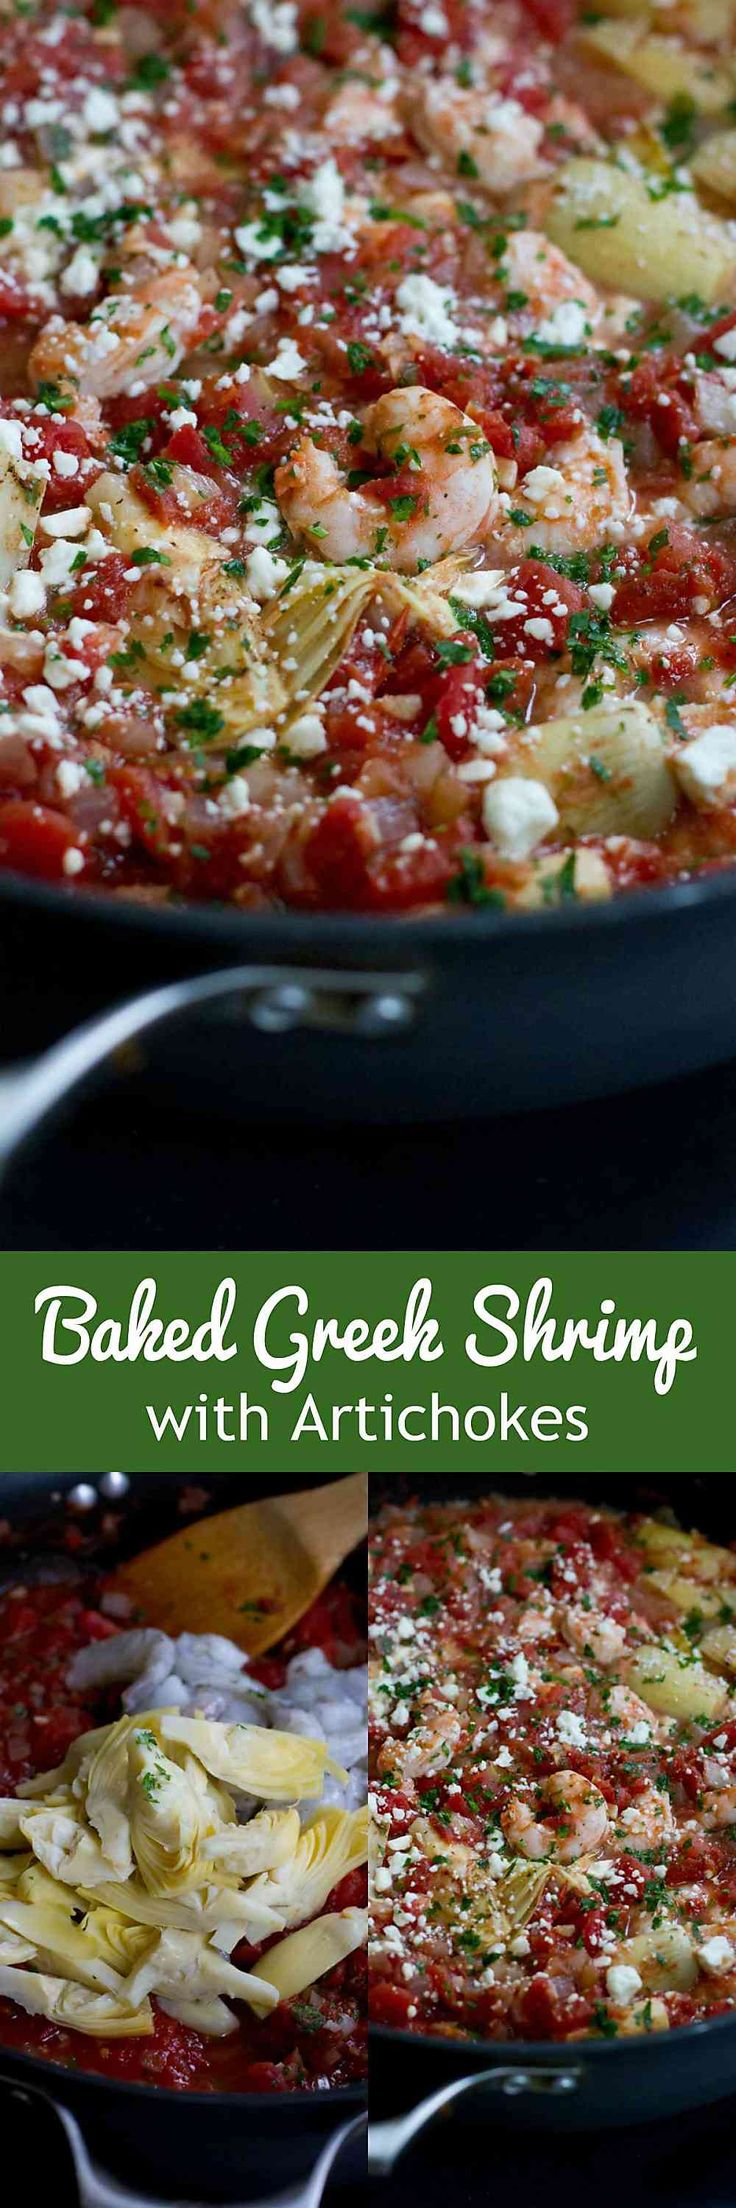 This Baked Greek Shrimp with artichokes is fantastic served over rice, pasta or quinoa! A quick and easy dinner recipe. 204 calories and 3 Weight Watchers SmartPoints